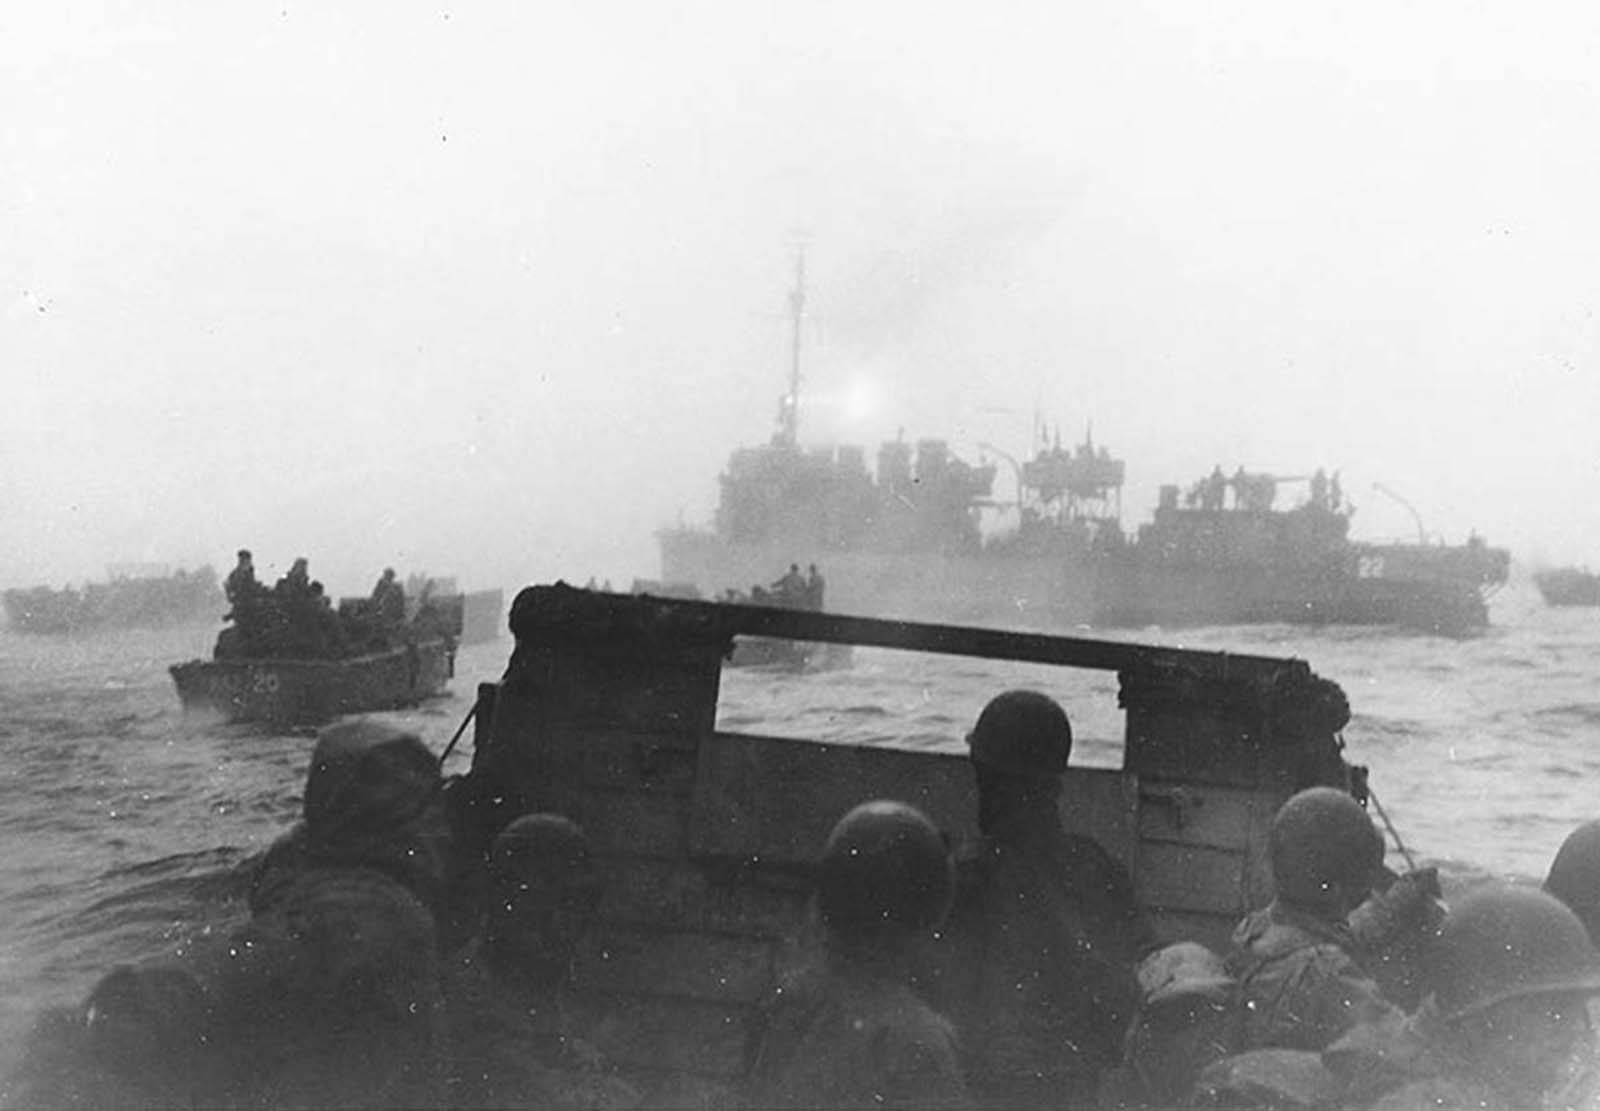 USS Pruitt leads landing craft from USS Heywood toward their landing beaches in Massacre Bay, Attu, on the first day of the May 11, 1943 invasion of Attu. Pruitt used her radar and searchlight to guide the boats nine miles through the fog. The searchlight beam is faintly visible pointing aft from atop her pilothouse. Some 15,000 American and Canadian troops successfully landed on the island.